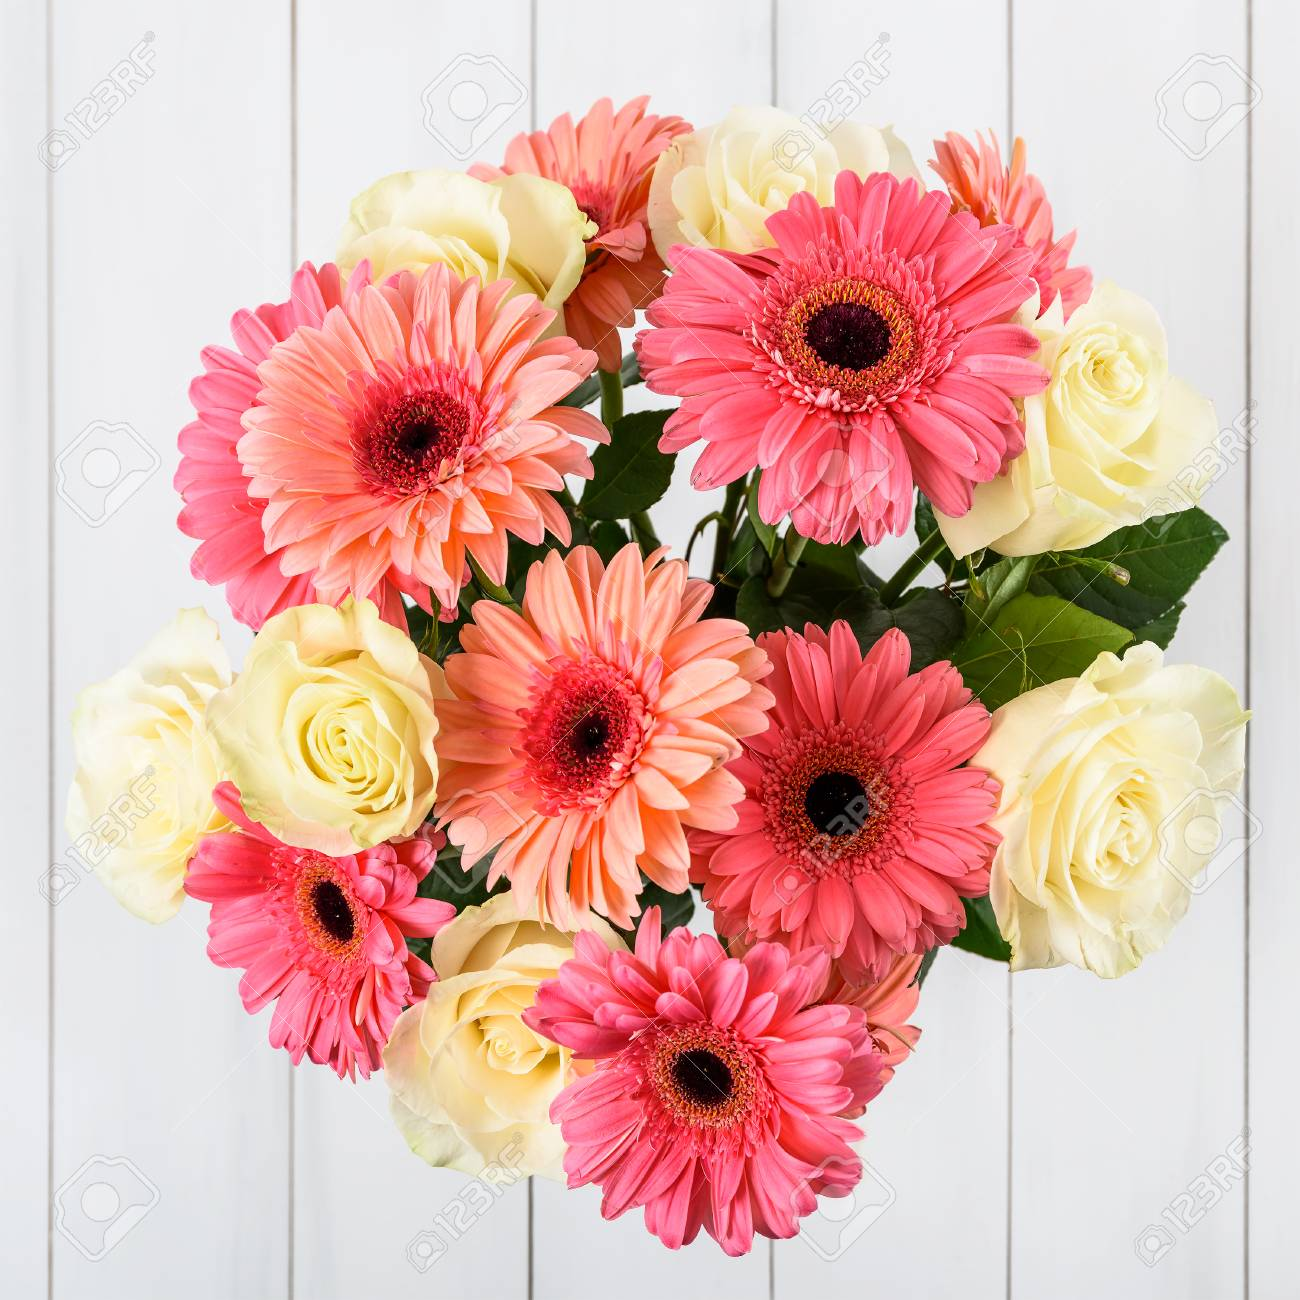 Pink Gerbera Daisy Flowers And White Roses Bouquet Stock Photo, Picture And  Royalty Free Image. Image 68745453.